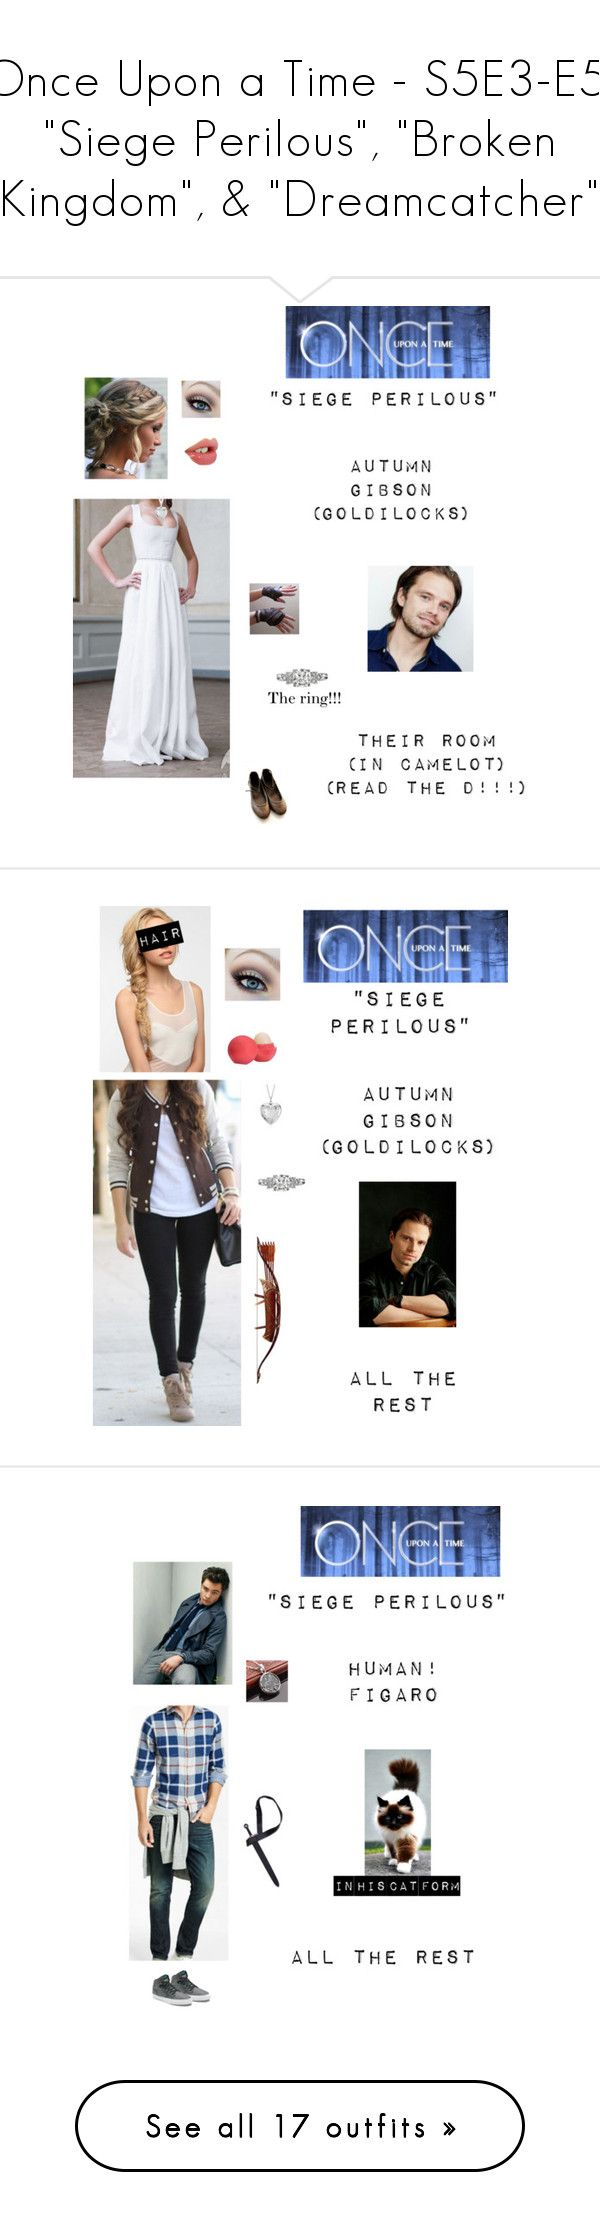 """""""Once Upon a Time - S5E3-E5: """"Siege Perilous"""", """"Broken Kingdom"""", & """"Dreamcatcher"""""""" by nerdbucket ❤ liked on Polyvore featuring ouat, Blue Nile, Sebastian Professional, Eos, Eva NYC, Express, Vans, men's fashion, menswear and Tiger of Sweden"""